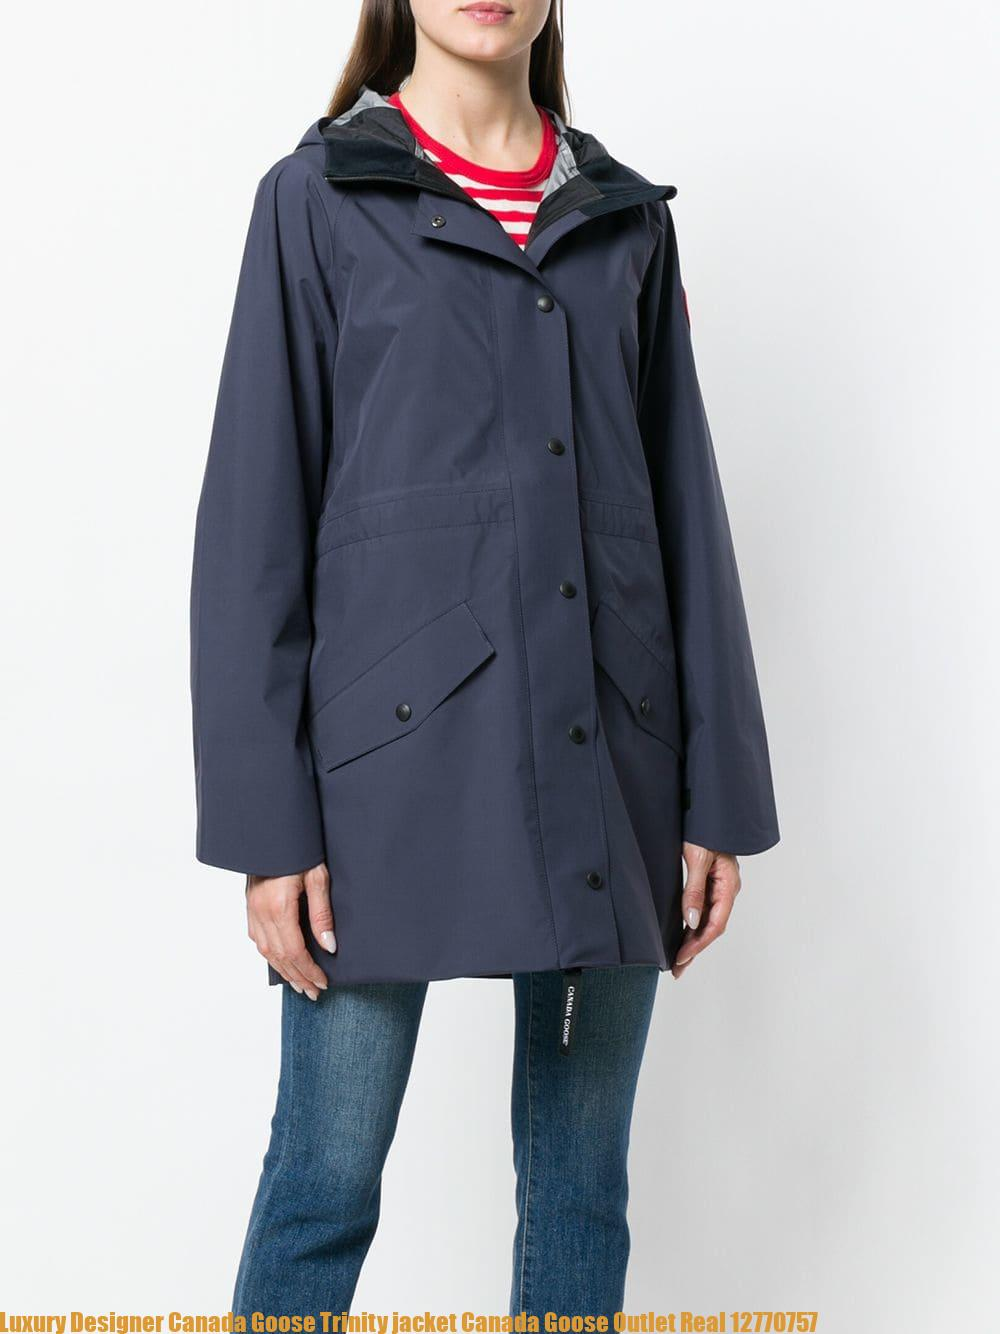 dc1adc56526 Luxury Designer Canada Goose Trinity jacket Canada Goose Outlet Real  12770757